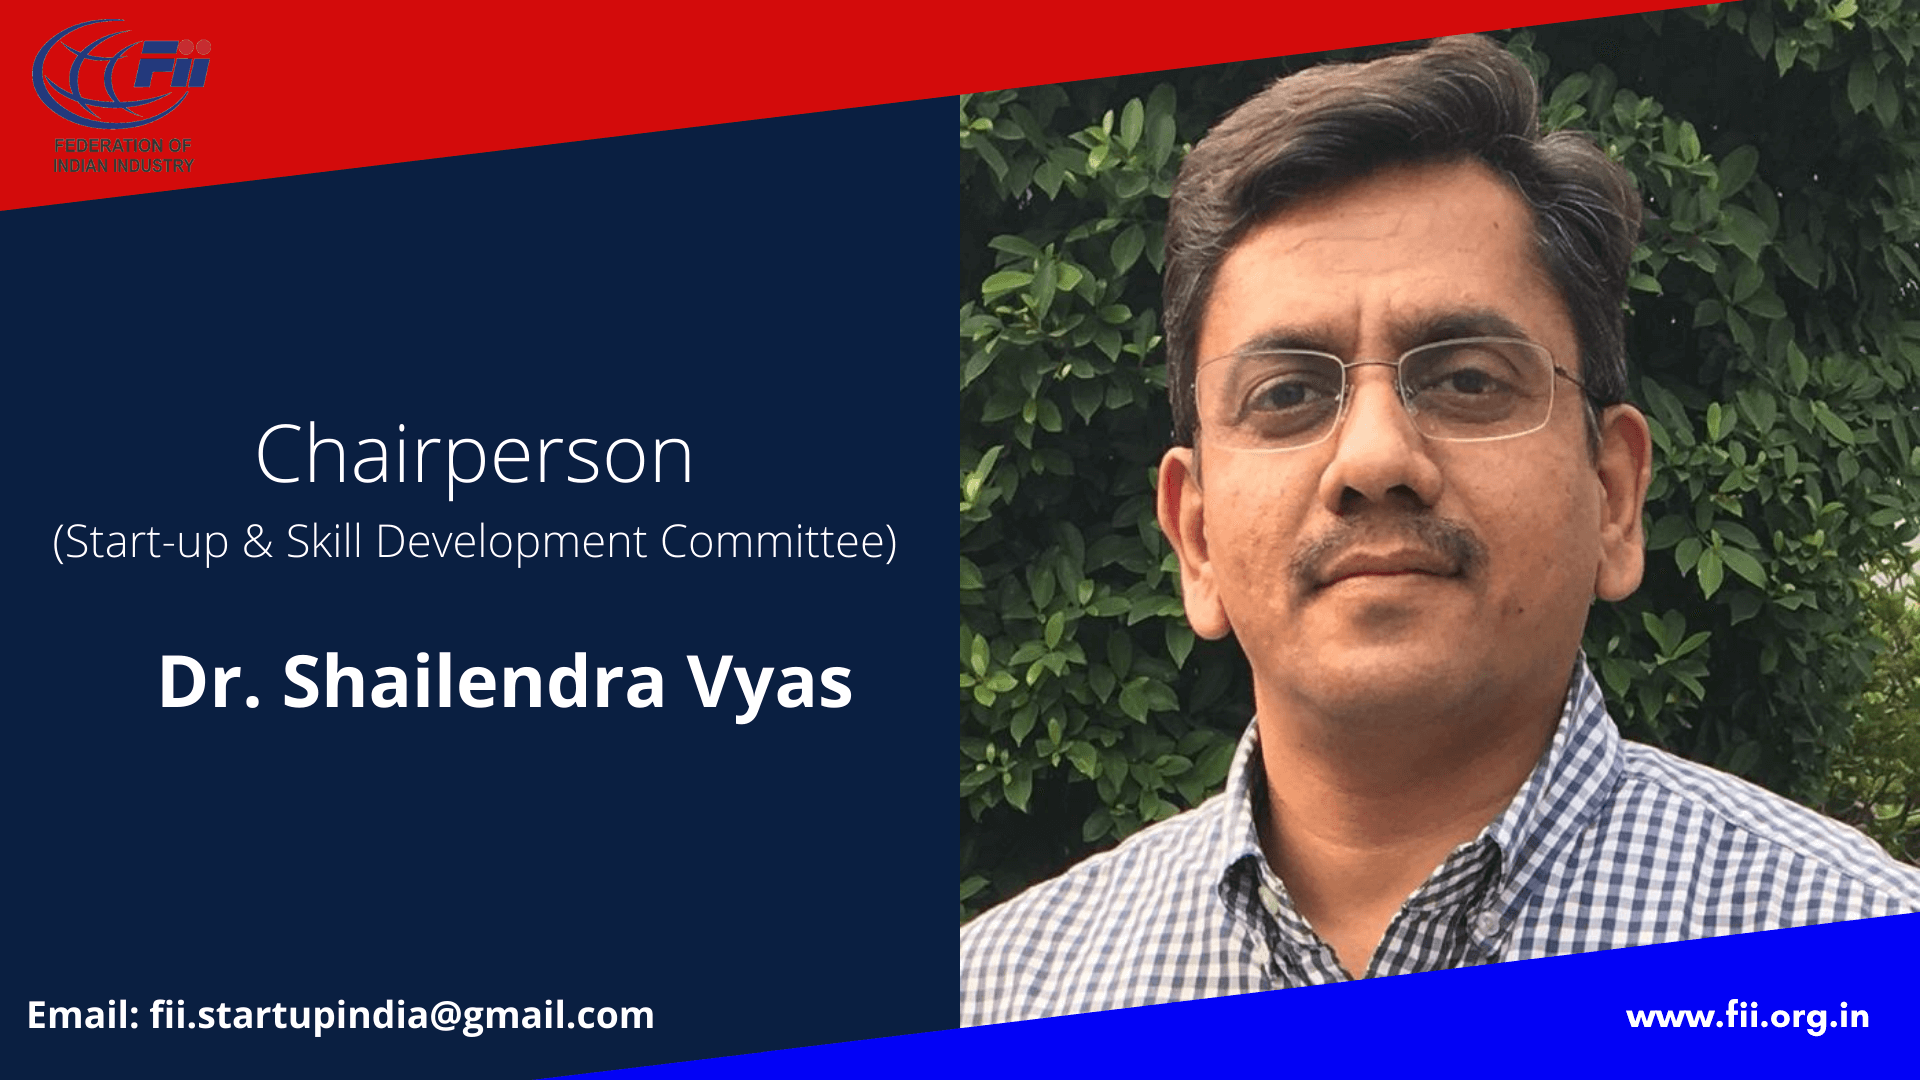 Dr. Shailendra Vyas, Chairperson, Startup & Skill Development Committee